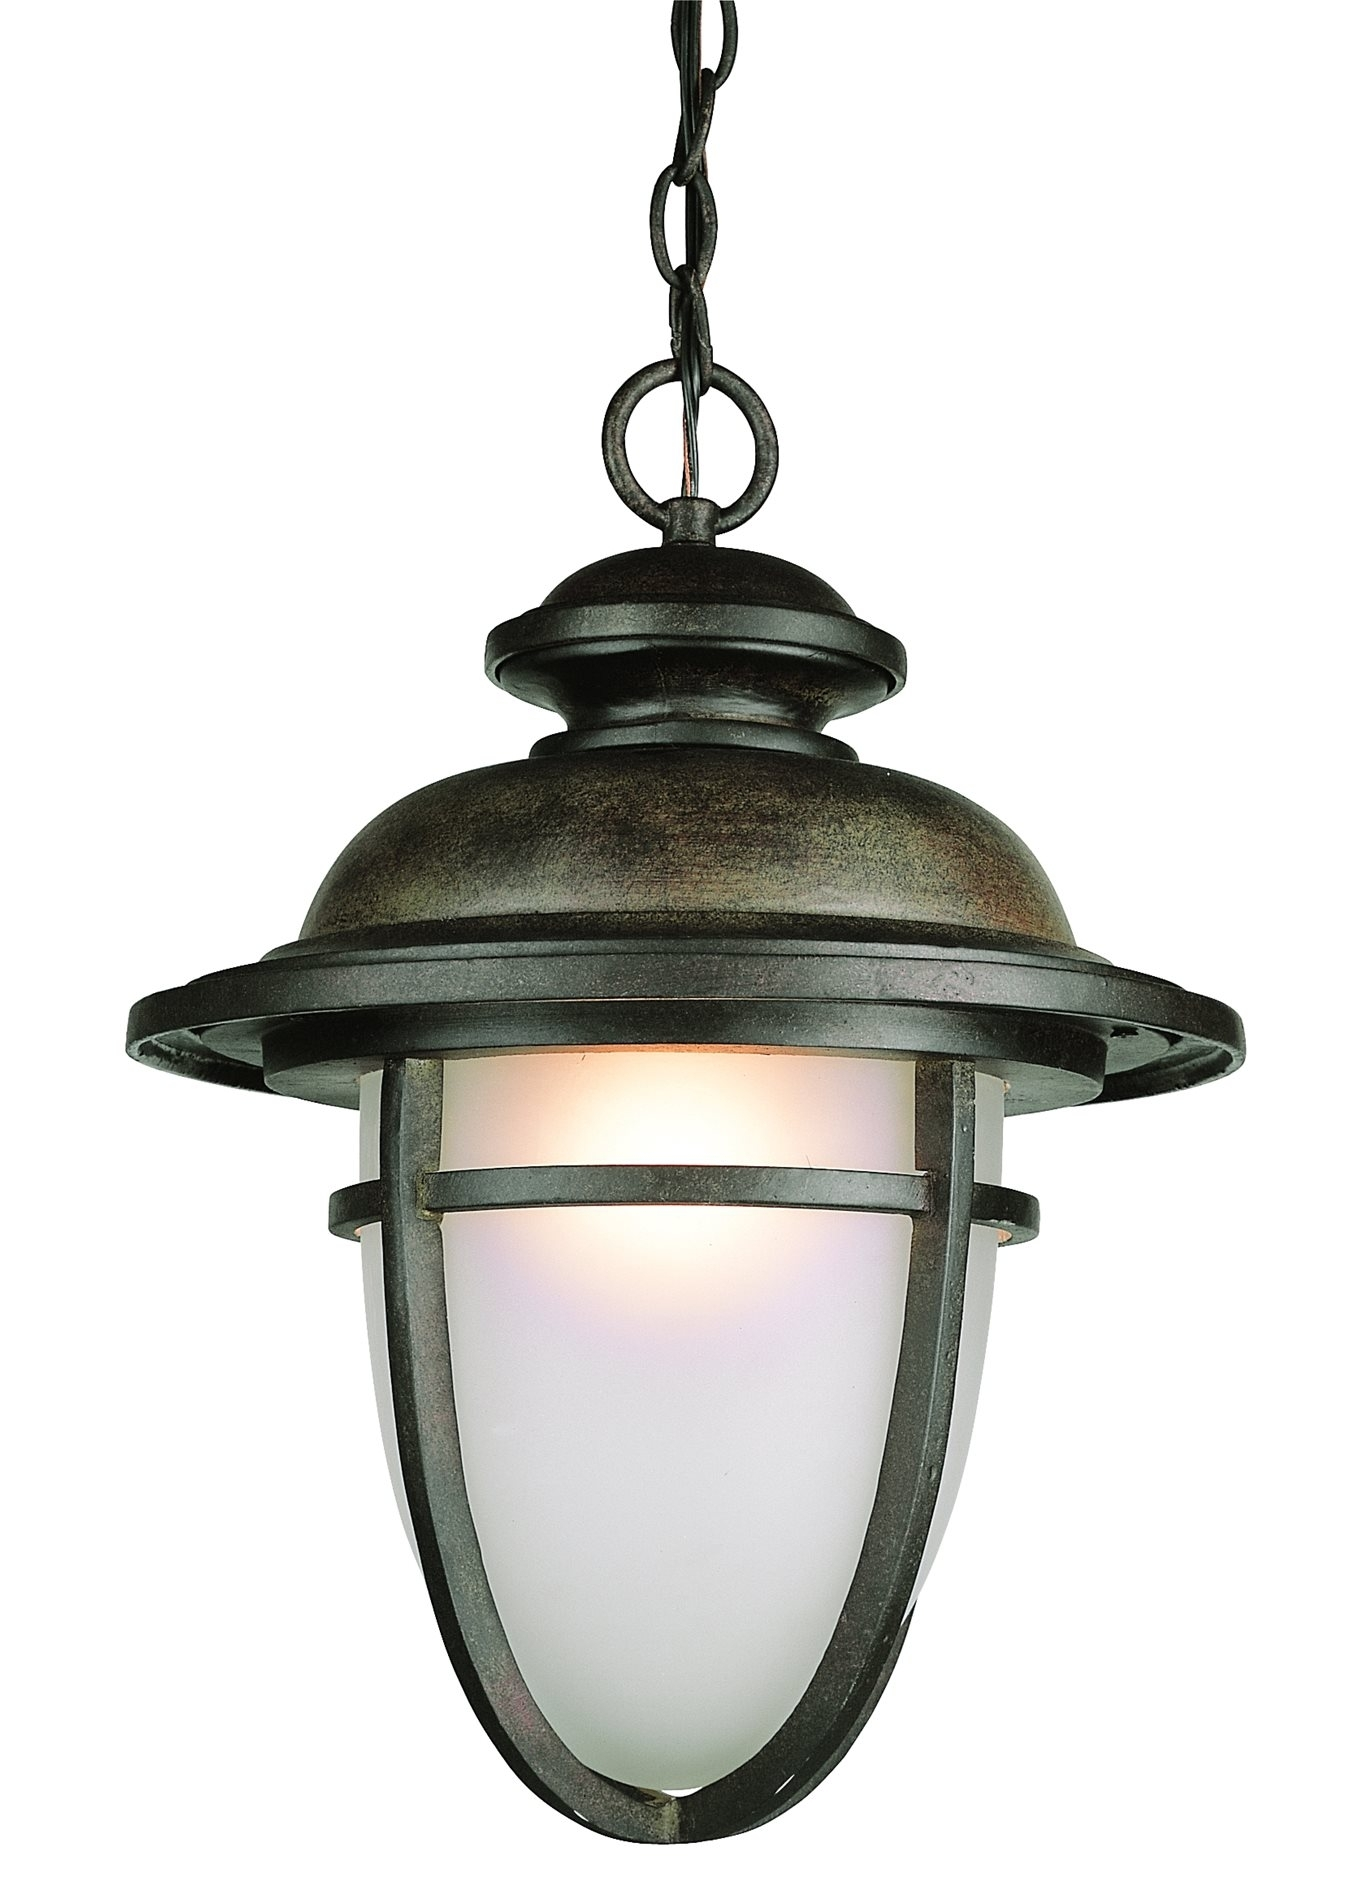 Craftsman And Traditional Detailing Draw The Eye In To This Trans Pertaining To Outdoor Hanging Globe Lights (View 2 of 15)